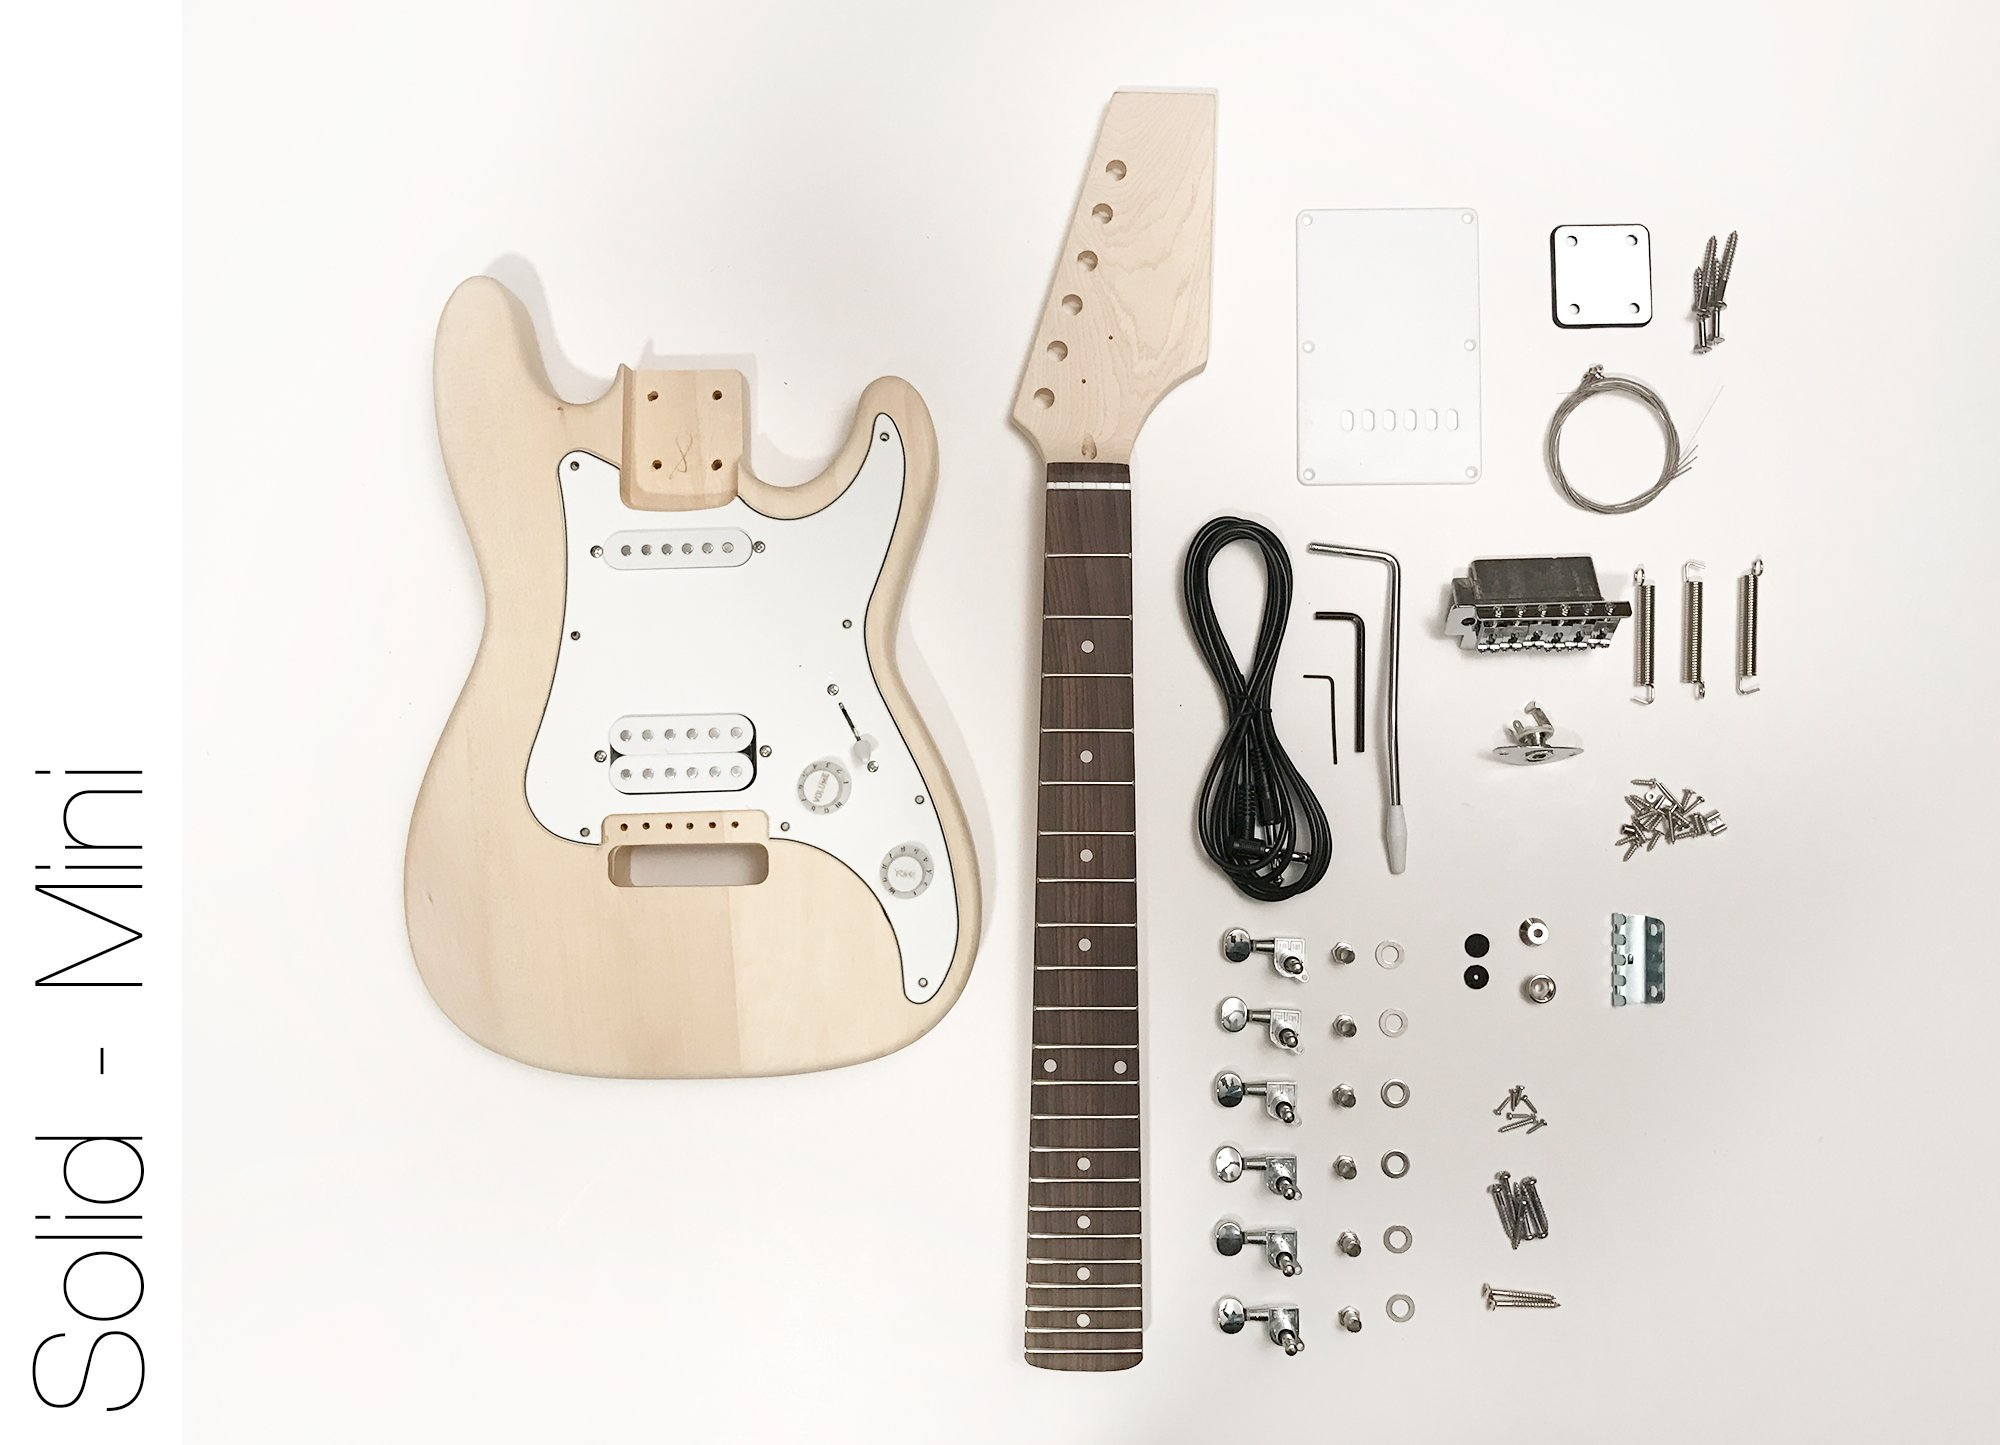 Cheap DIY Electric Guitar Kit - Mini ST Style Build Your Own Guitar Black Friday & Cyber Monday 2019